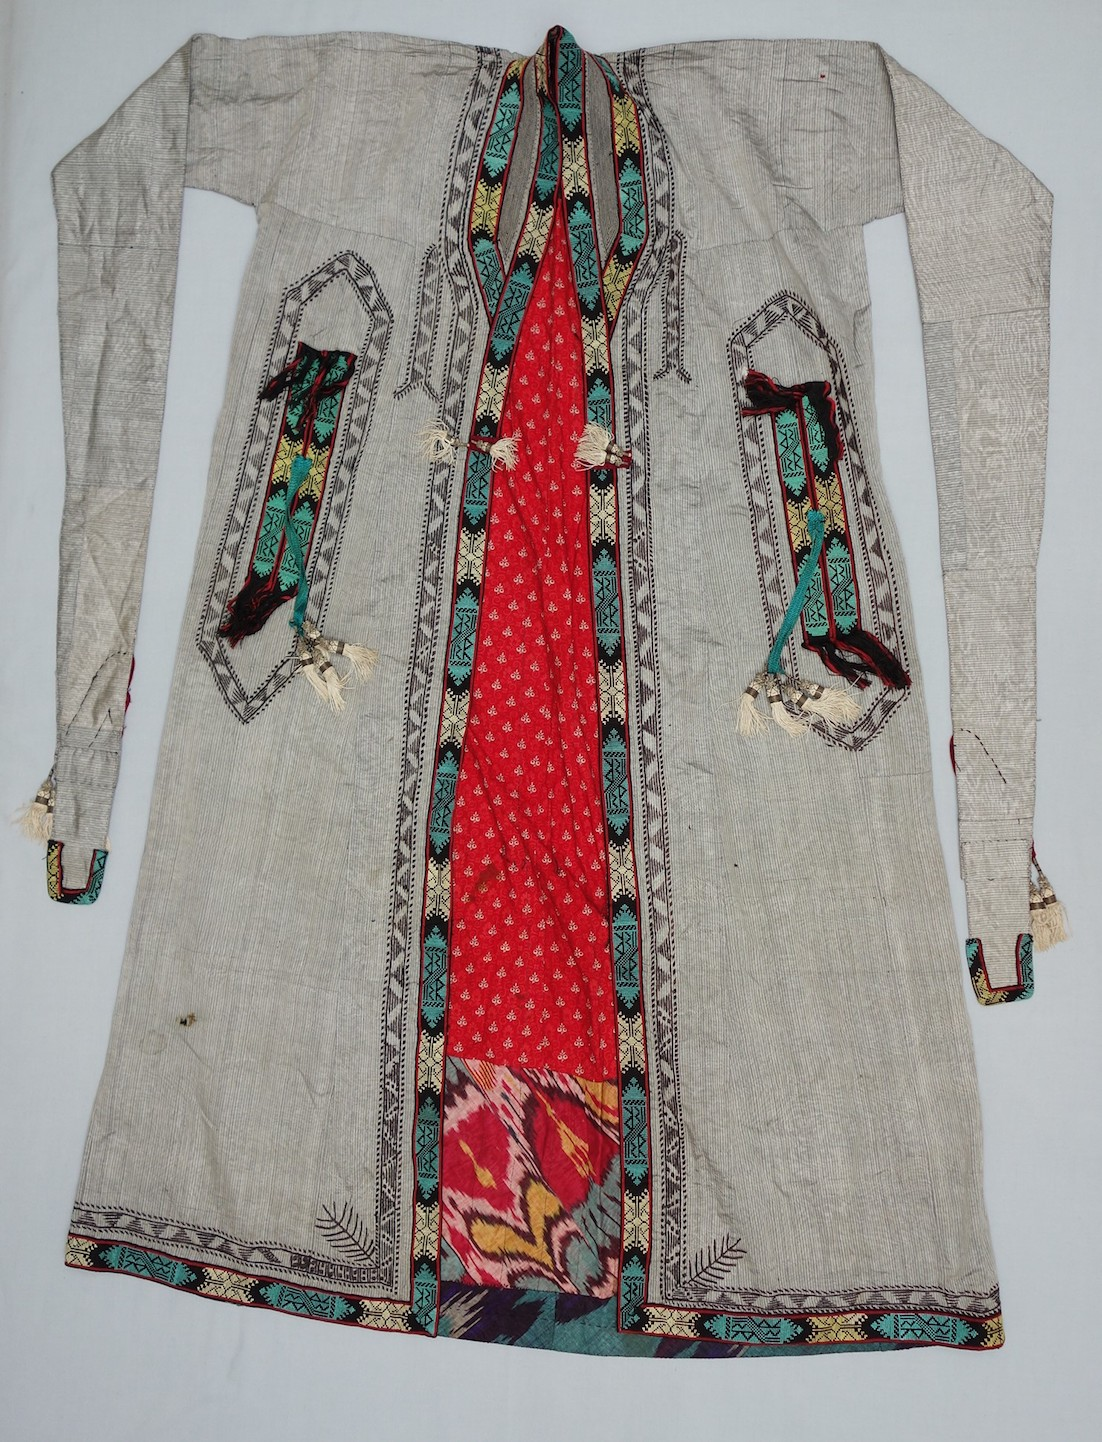 A woman's outdoor coat from Uzbekistan, donated to the TRC by David and Elizabeth Reisbord.